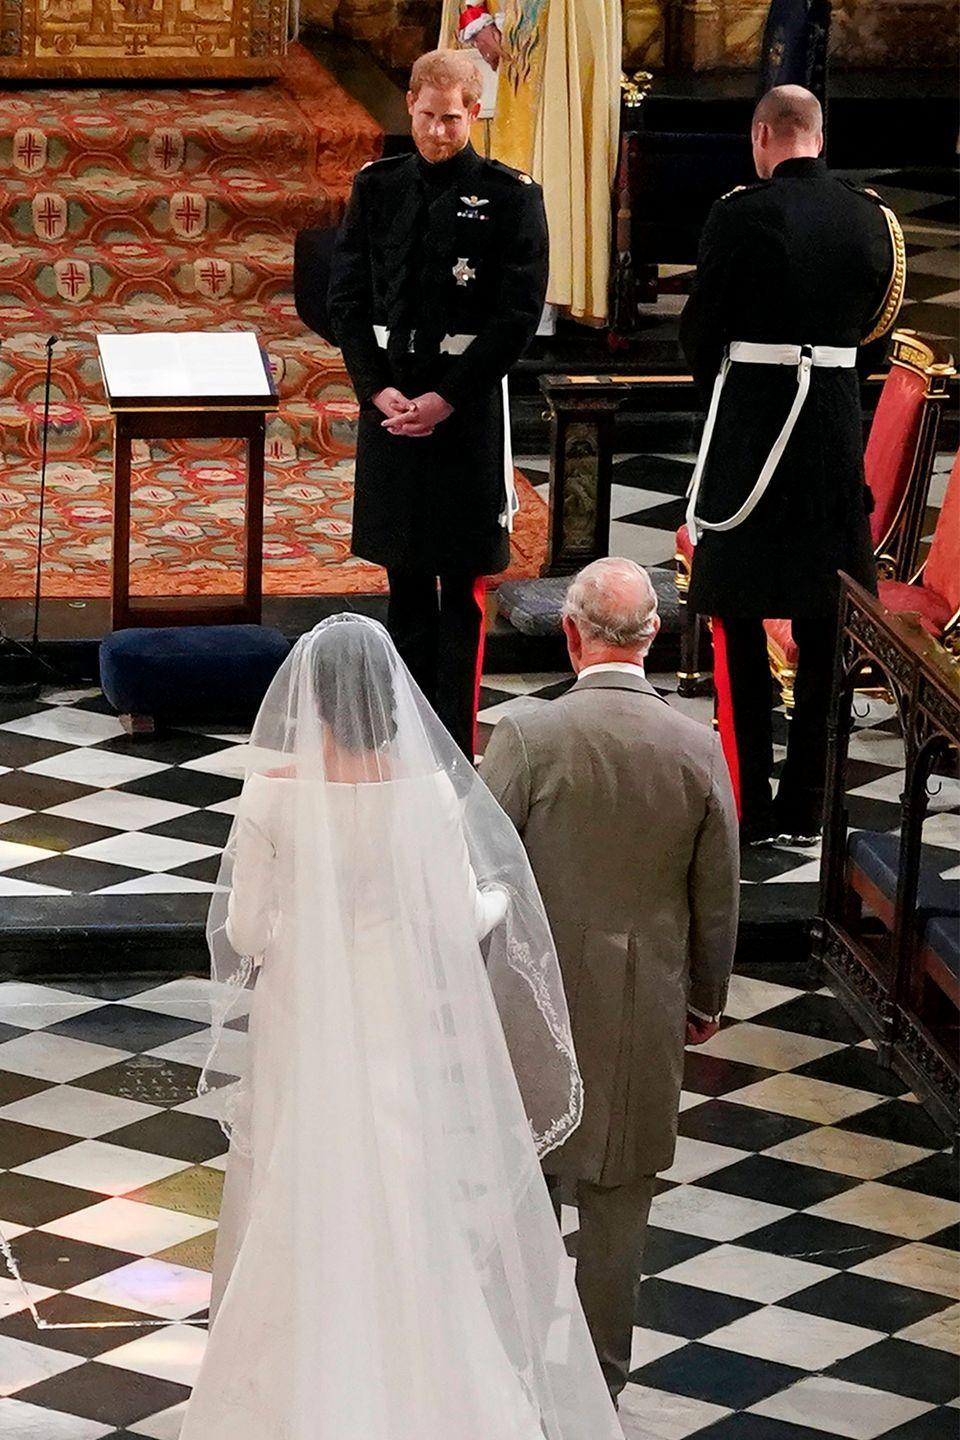 """<p>In a major tradition-breaking moment, <a href=""""https://www.marieclaire.com/celebrity/a20740766/prince-charles-walking-meghan-markle-down-aisle/"""" rel=""""nofollow noopener"""" target=""""_blank"""" data-ylk=""""slk:Prince Charles walked Meghan down the aisle"""" class=""""link rapid-noclick-resp"""">Prince Charles walked Meghan down the aisle</a> for her May 2018 wedding to Prince Harry. The decision was made by Her Majesty after Meghan's father, <a href=""""https://www.marieclaire.com/celebrity/a22159695/thomas-markle-meghan-markle-terrified-interview/"""" rel=""""nofollow noopener"""" target=""""_blank"""" data-ylk=""""slk:Thomas Markle"""" class=""""link rapid-noclick-resp"""">Thomas Markle</a>, backed out of the ceremony. </p>"""